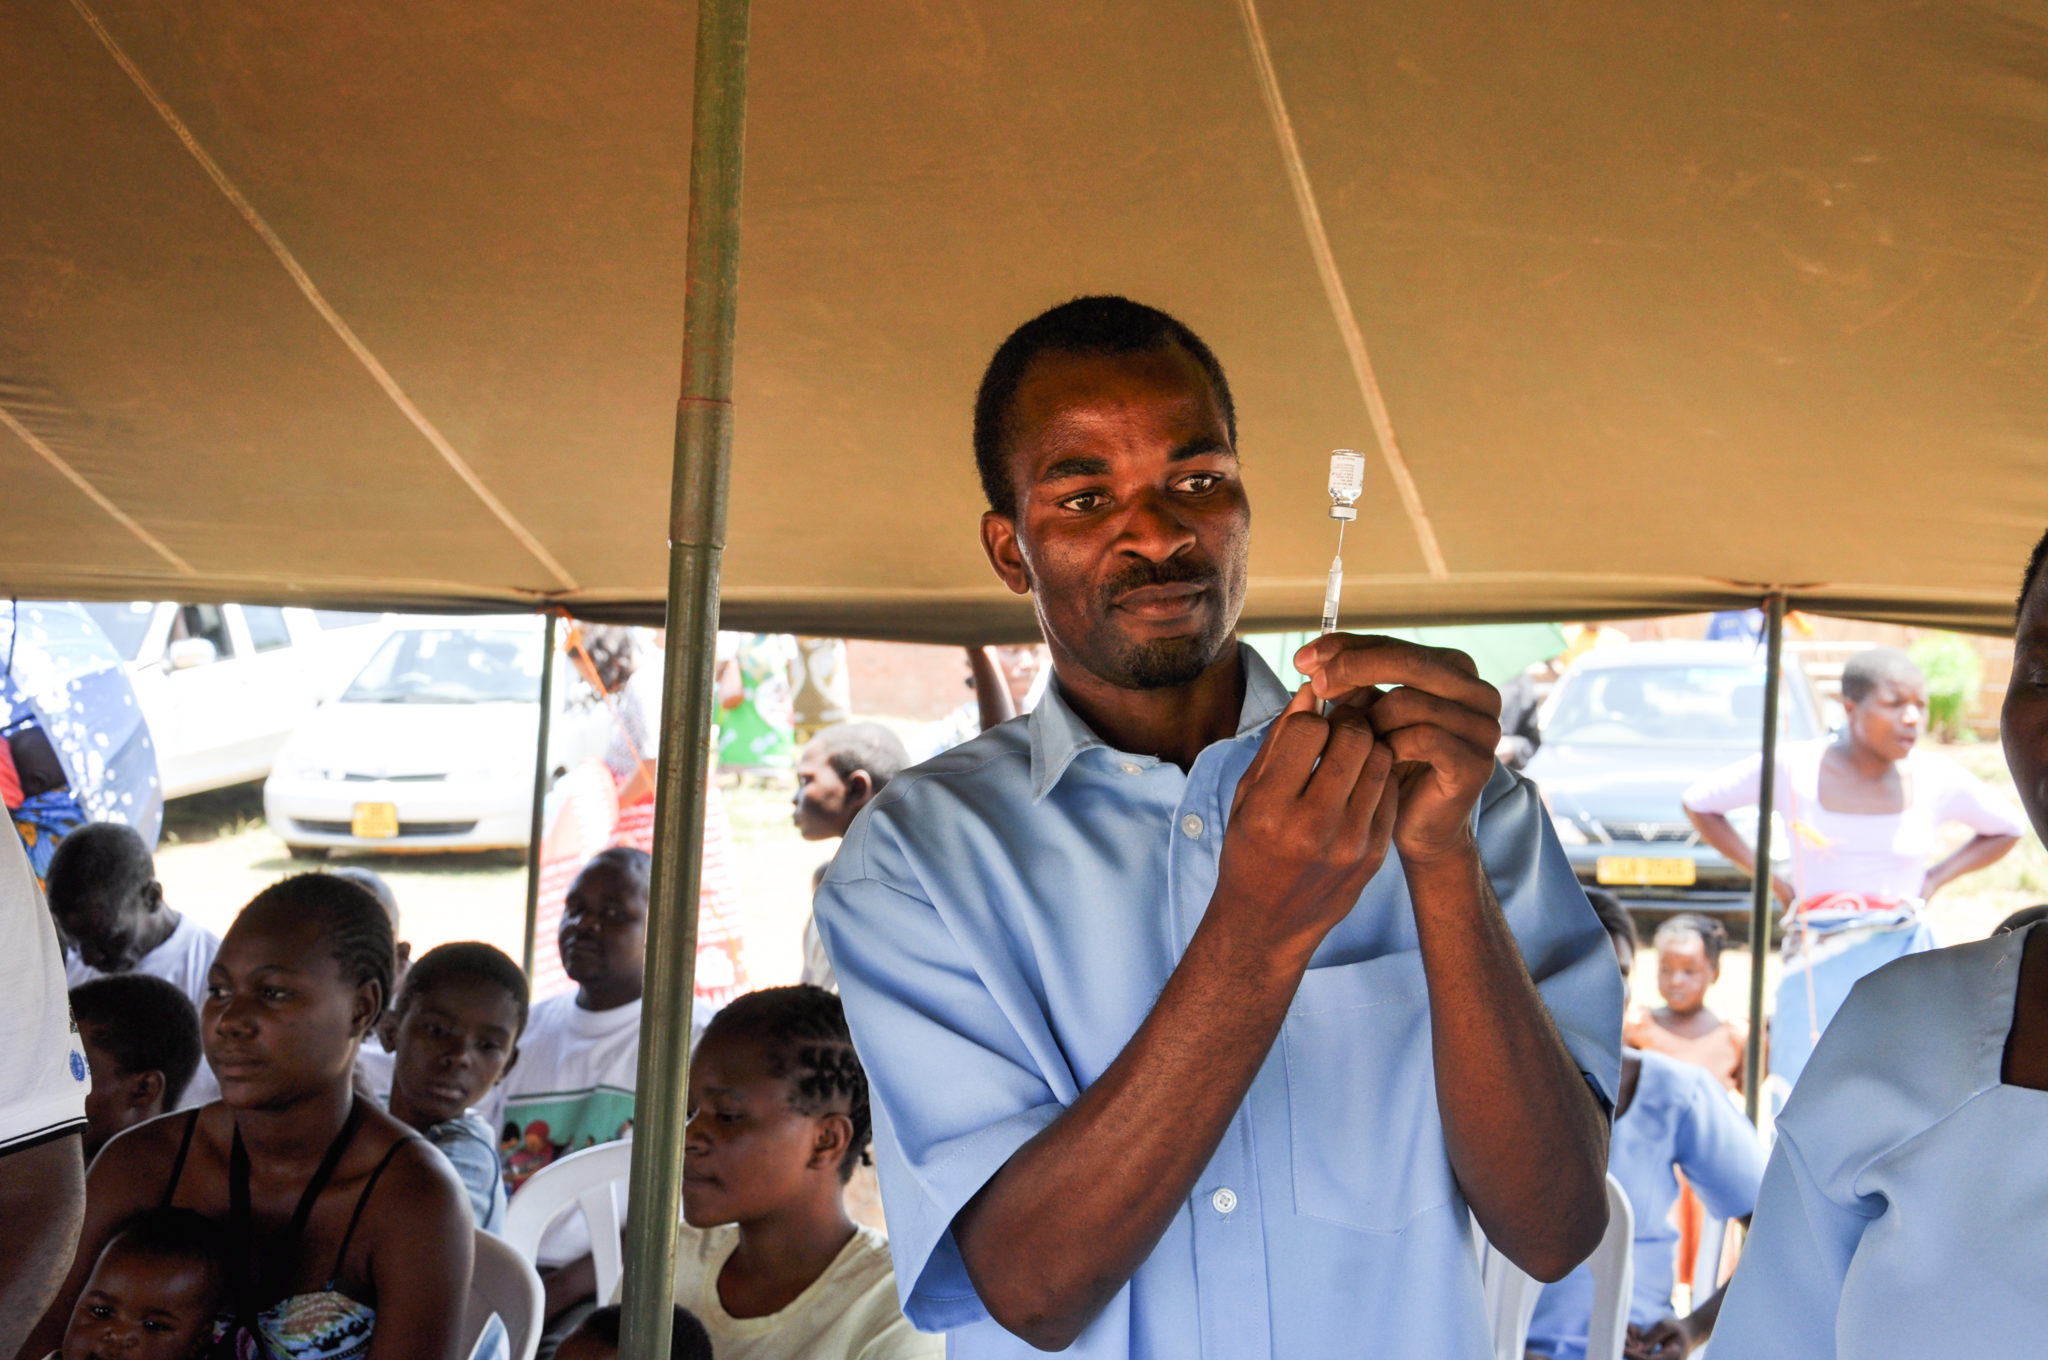 Health worker in Malawi preparing a vaccine